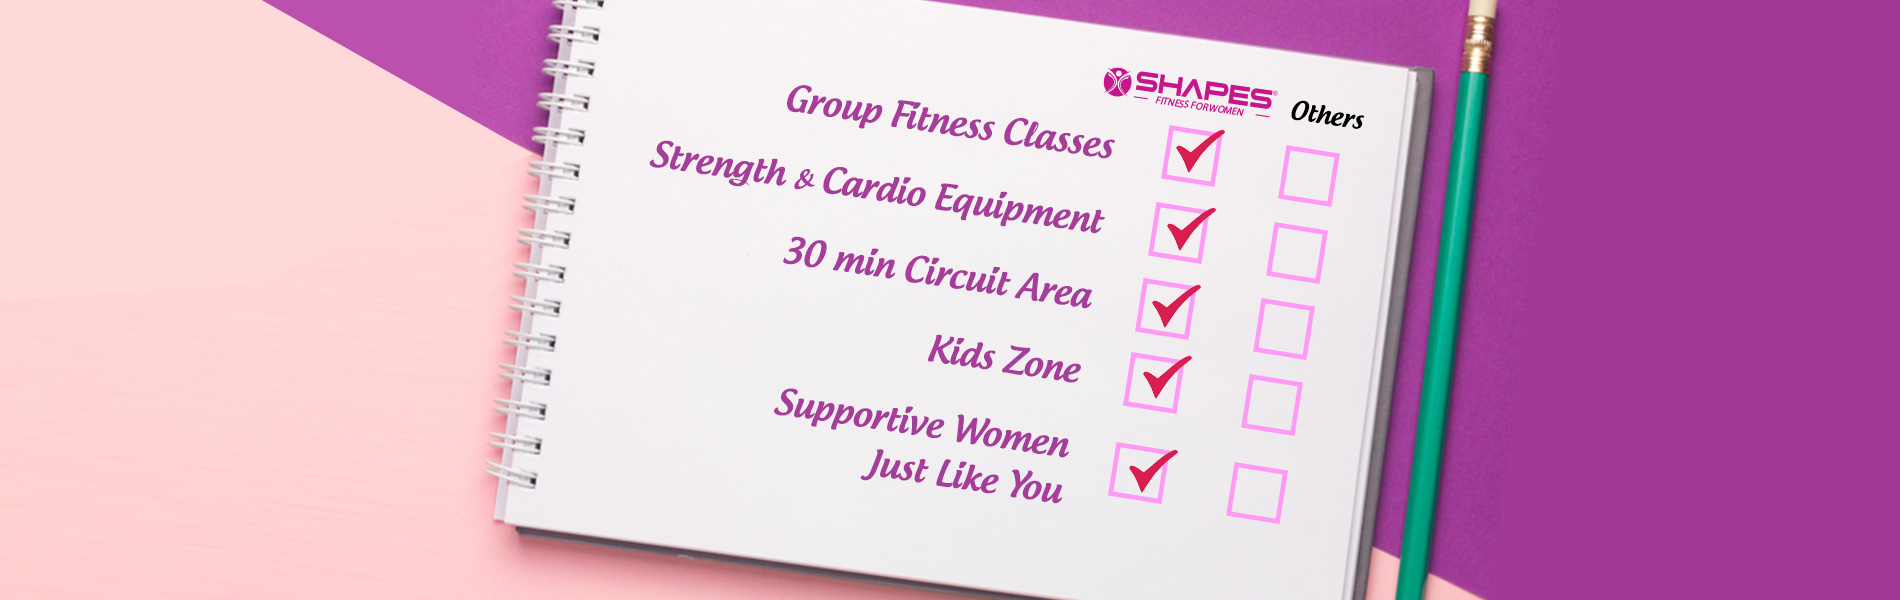 Group fitness classes, Strength & cardio equipment, 30 min circuit area, kids zone, supportive women just like you